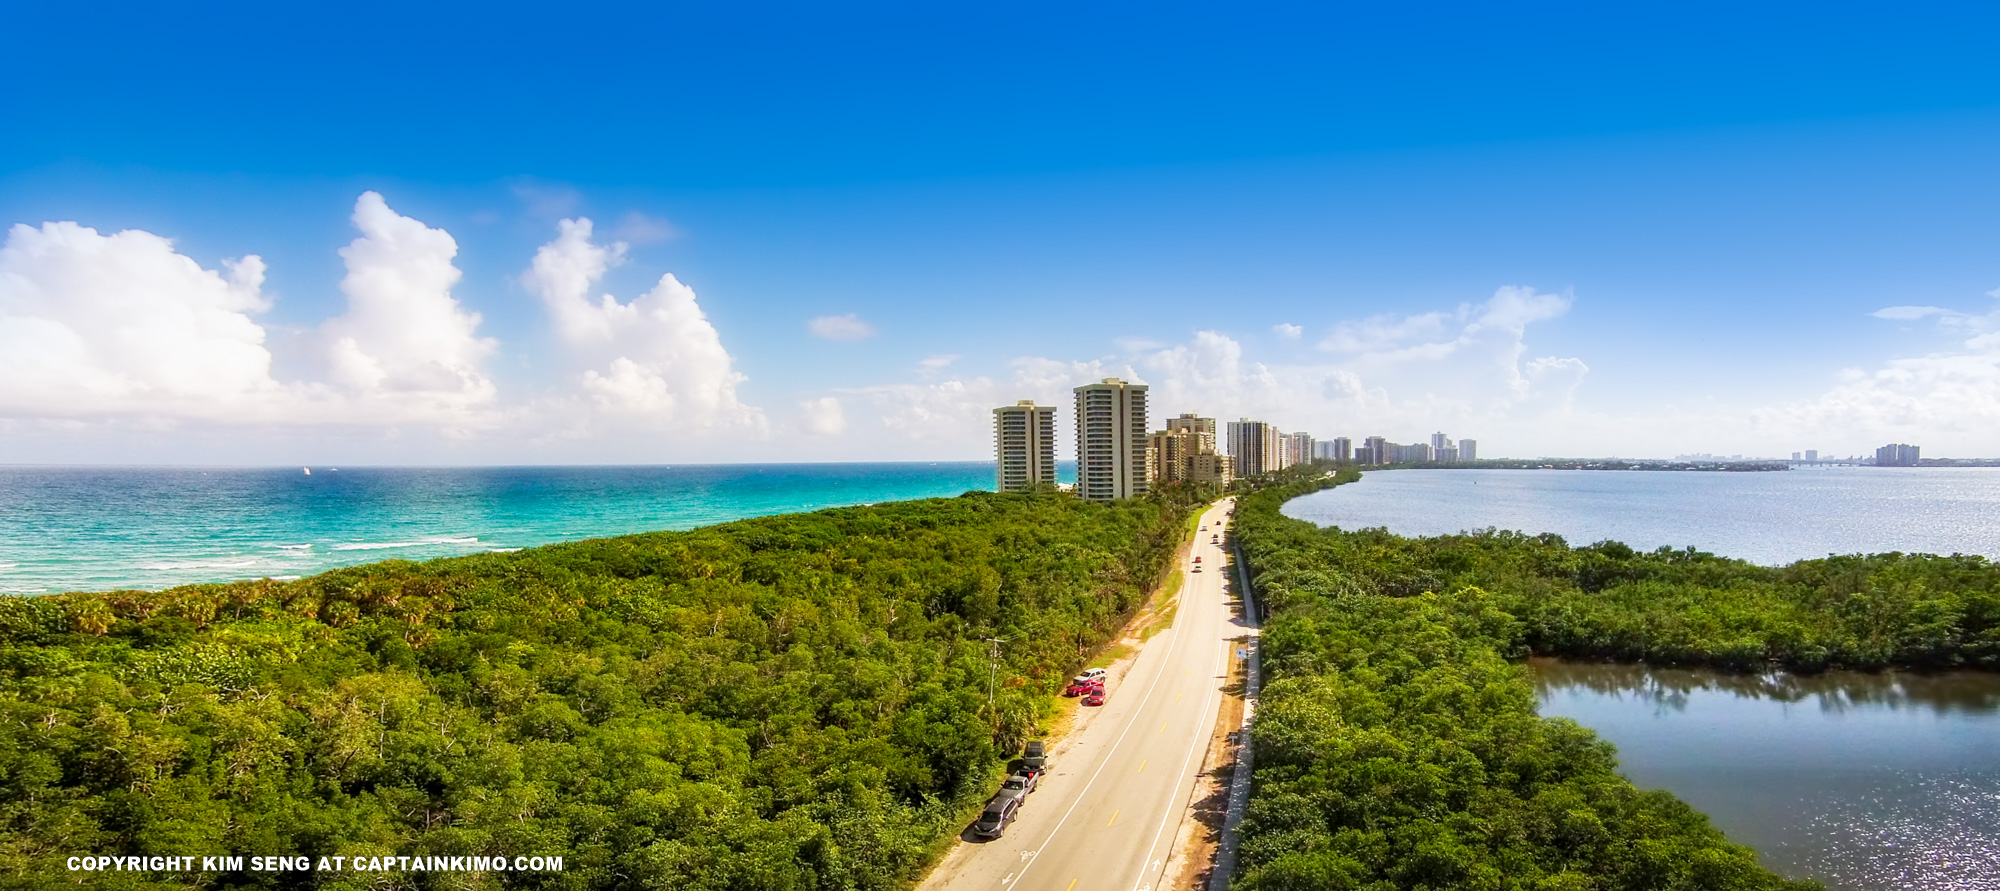 Singer Island Florida Condo Aerial View from Burnt Bridge